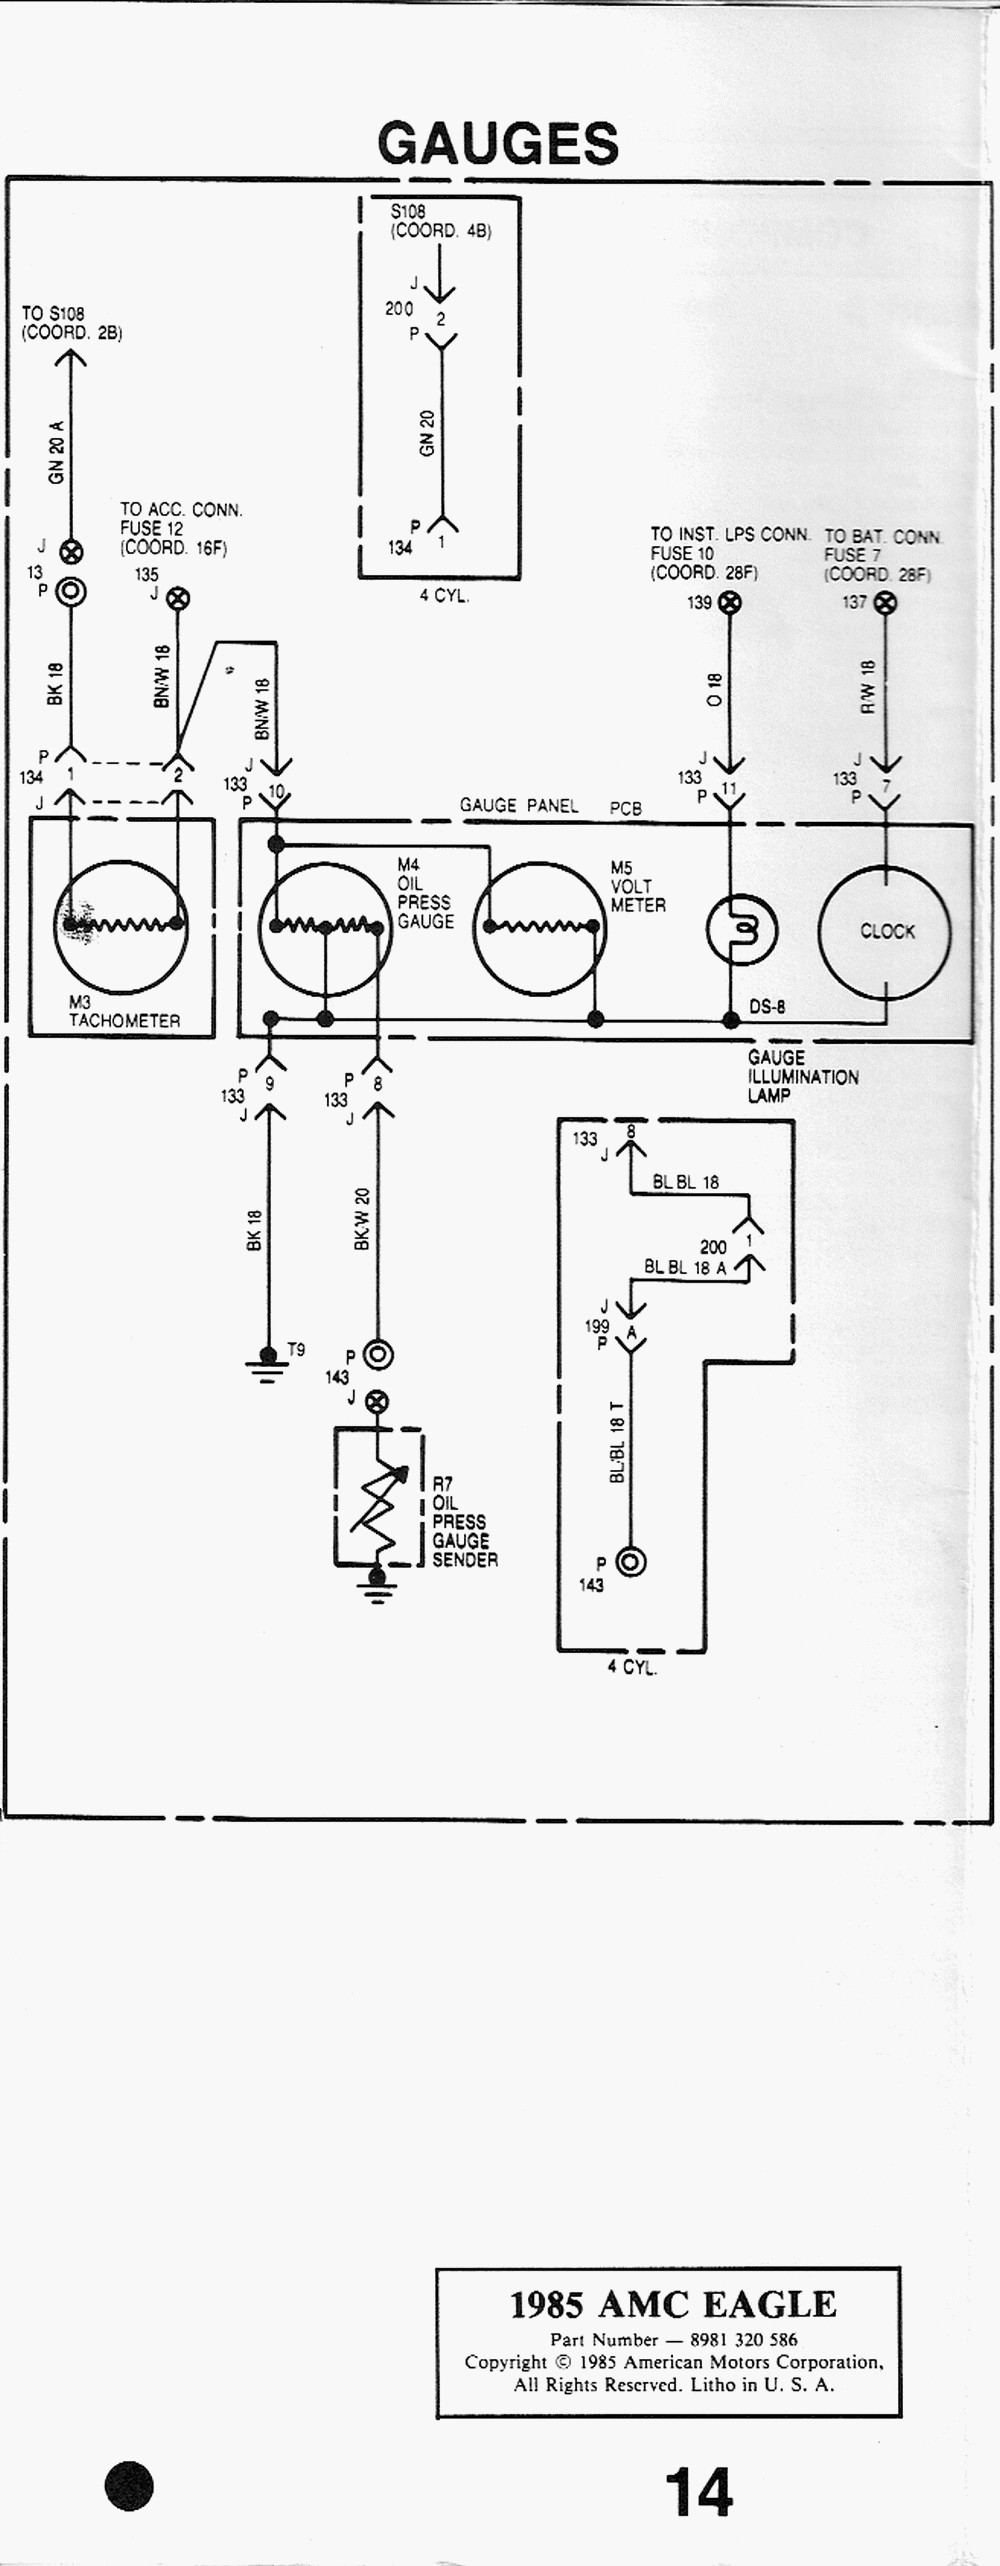 amc eagle wiper switch diagram   30 wiring diagram images